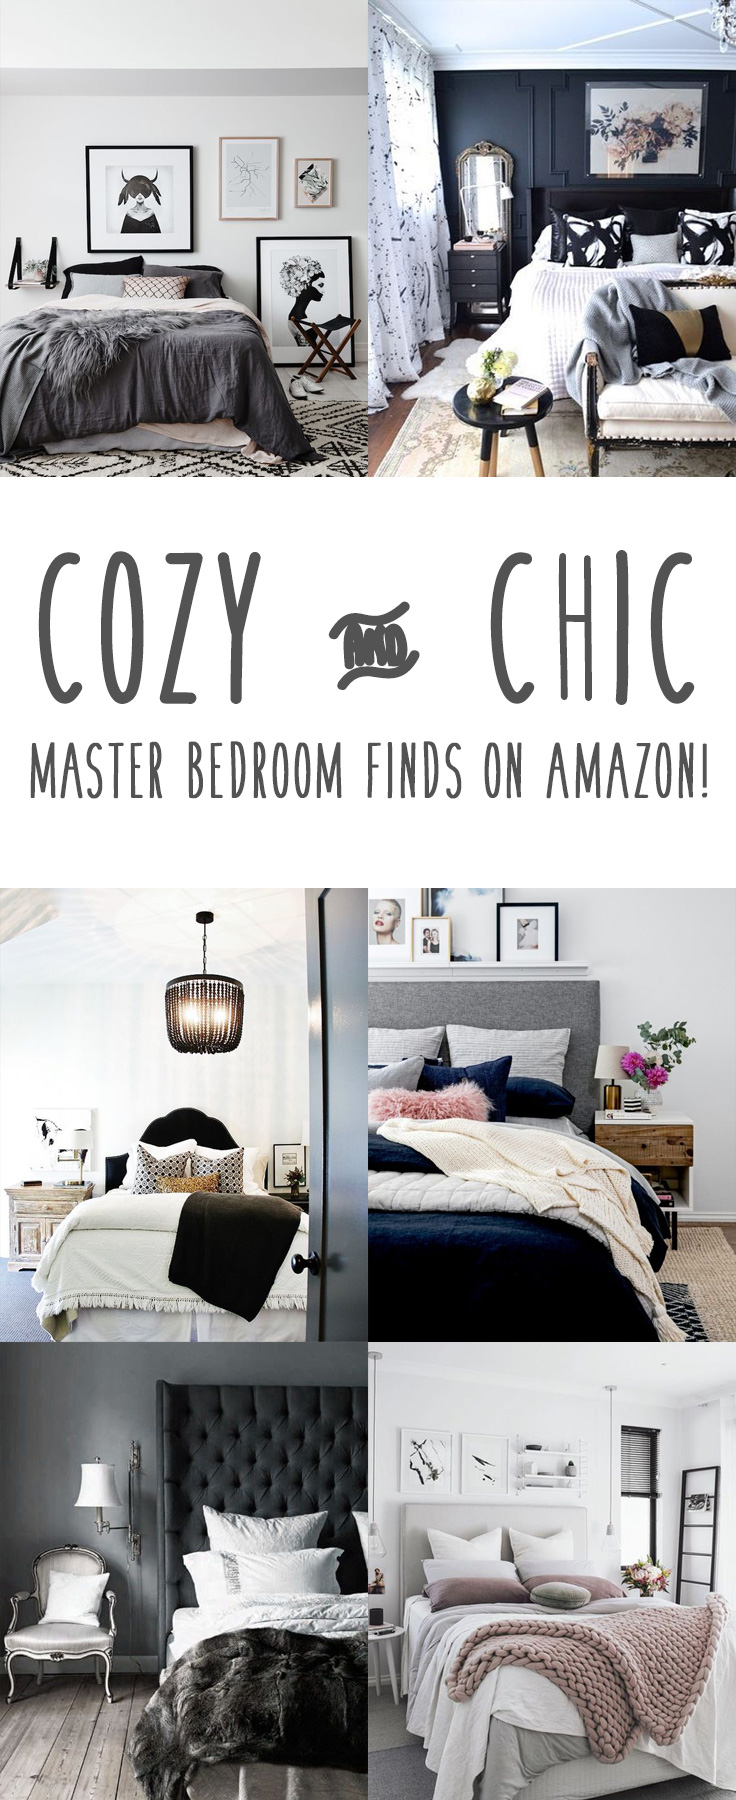 Cozy Amp Chic Bedroom Inspiration From Amazon Its Pam Del